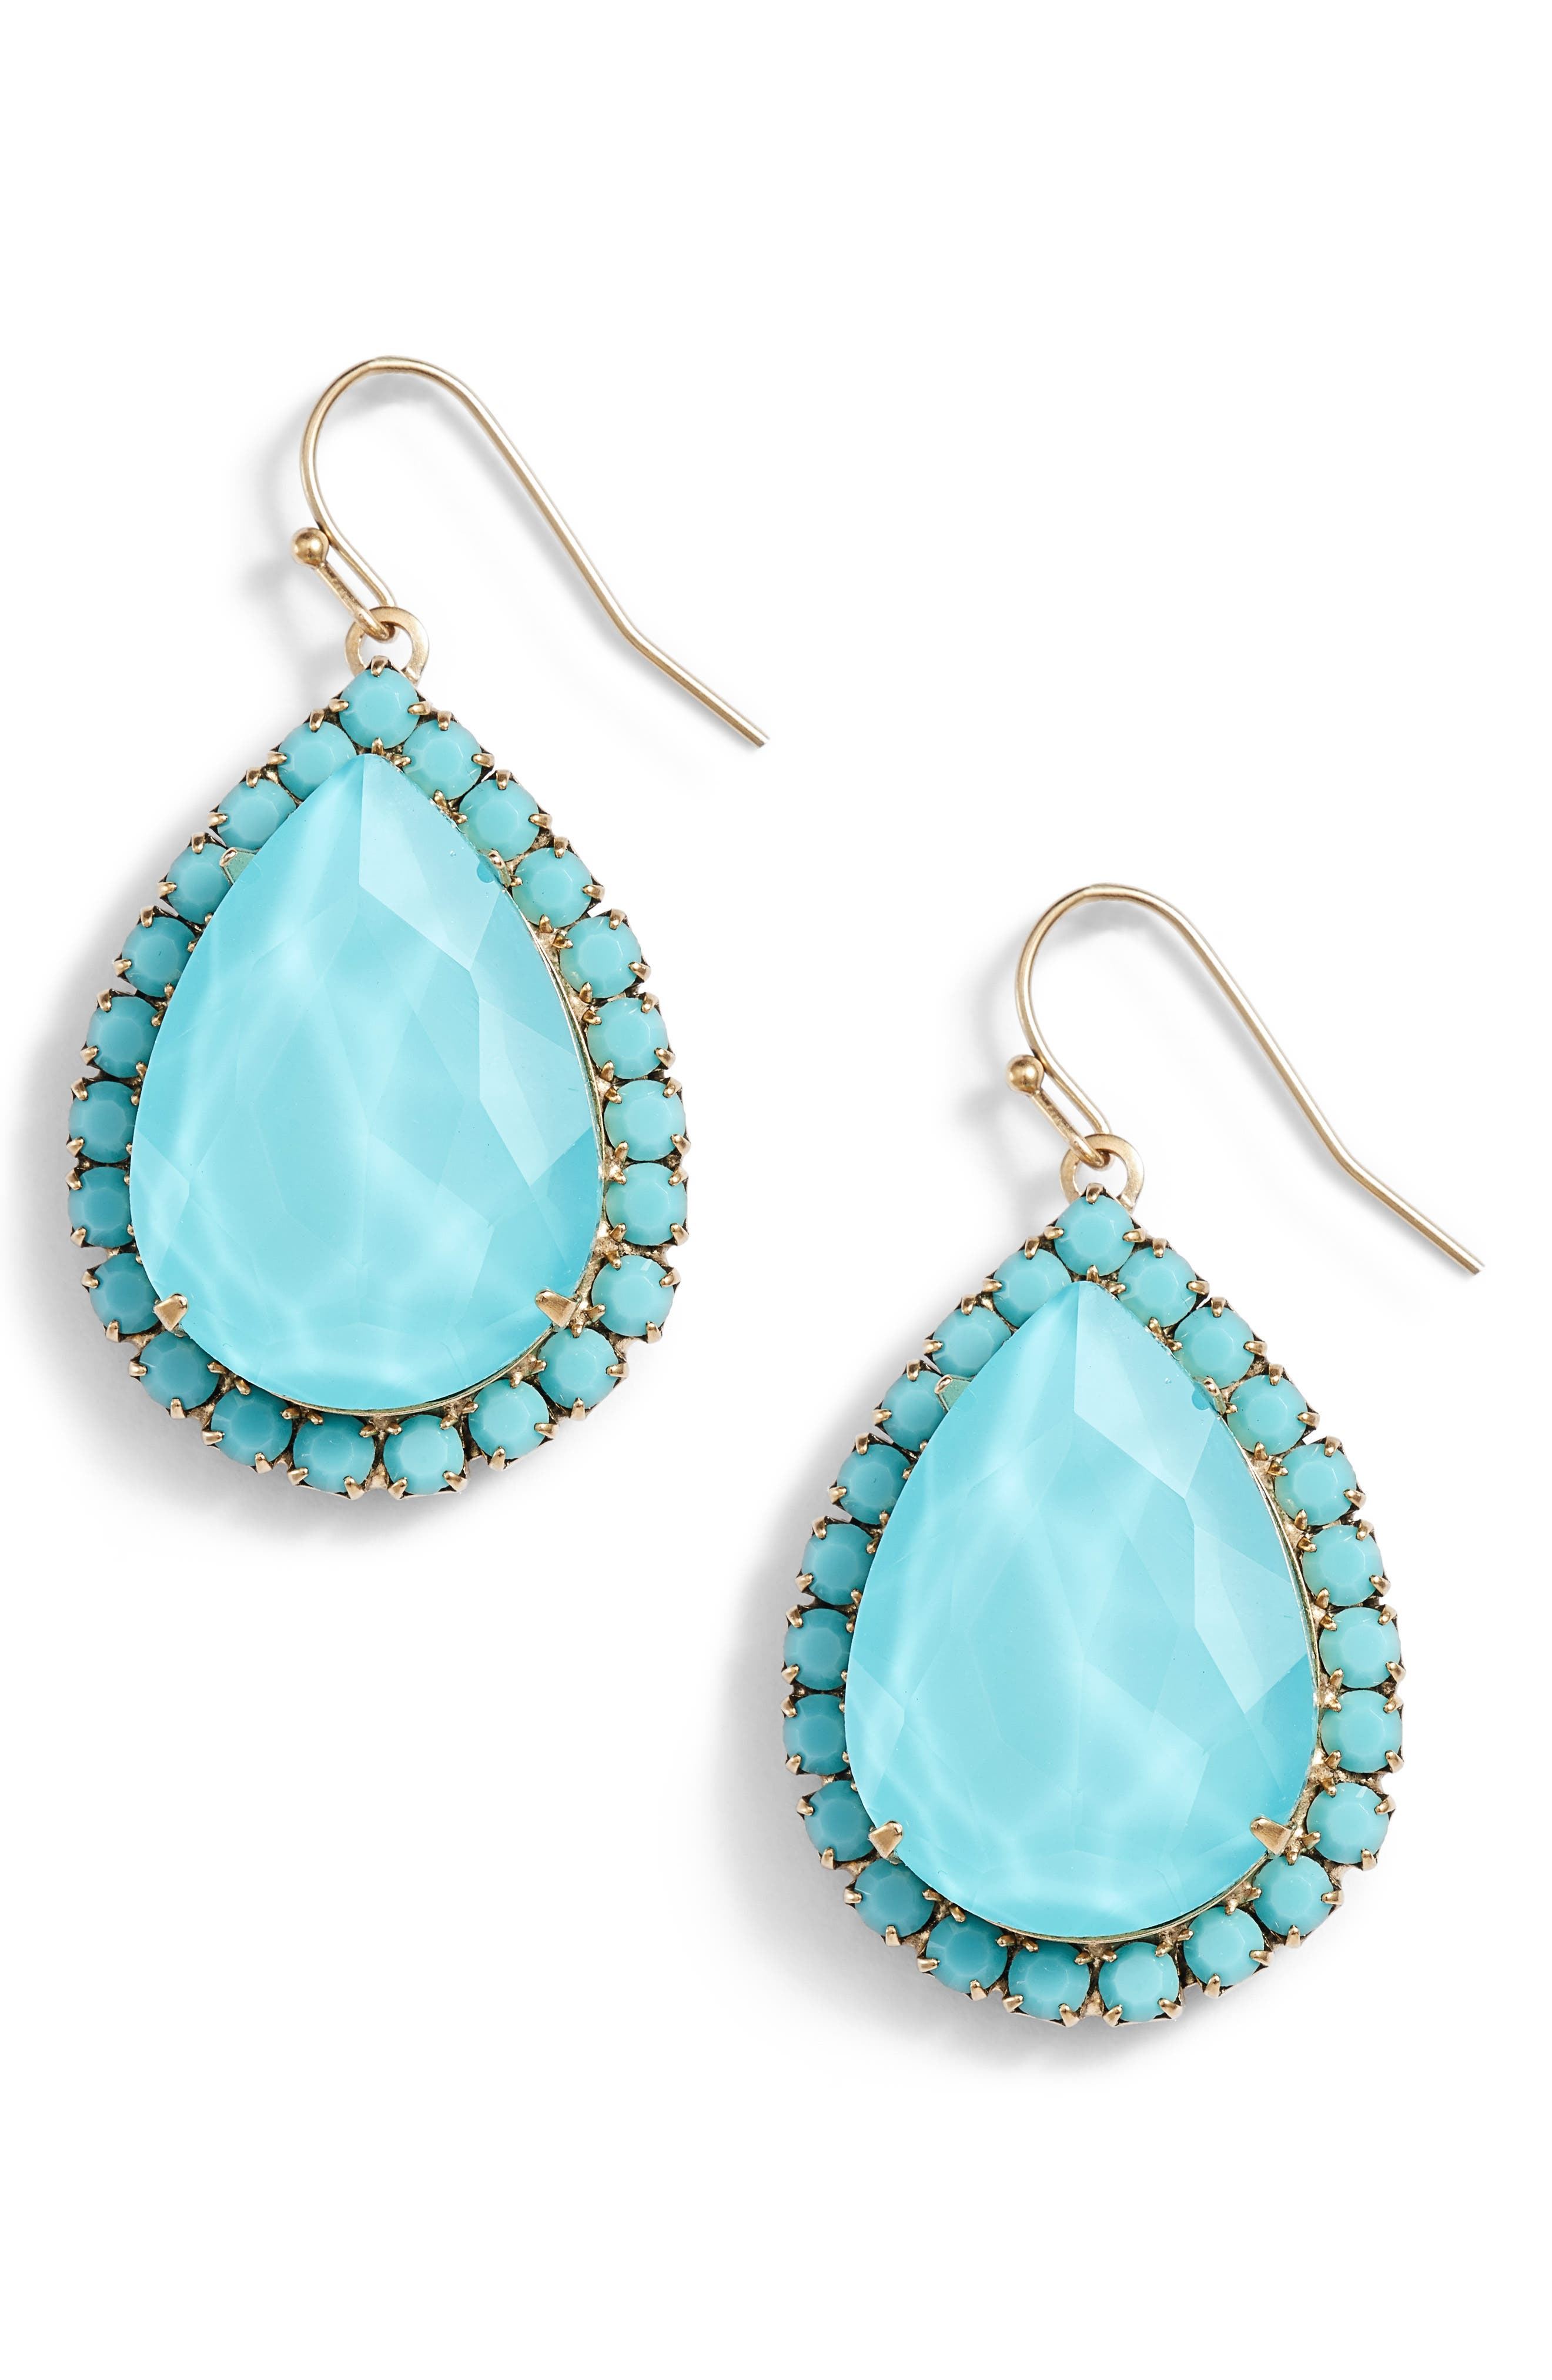 Krista Crystal Drop Earrings,                             Main thumbnail 1, color,                             TURQUOISE